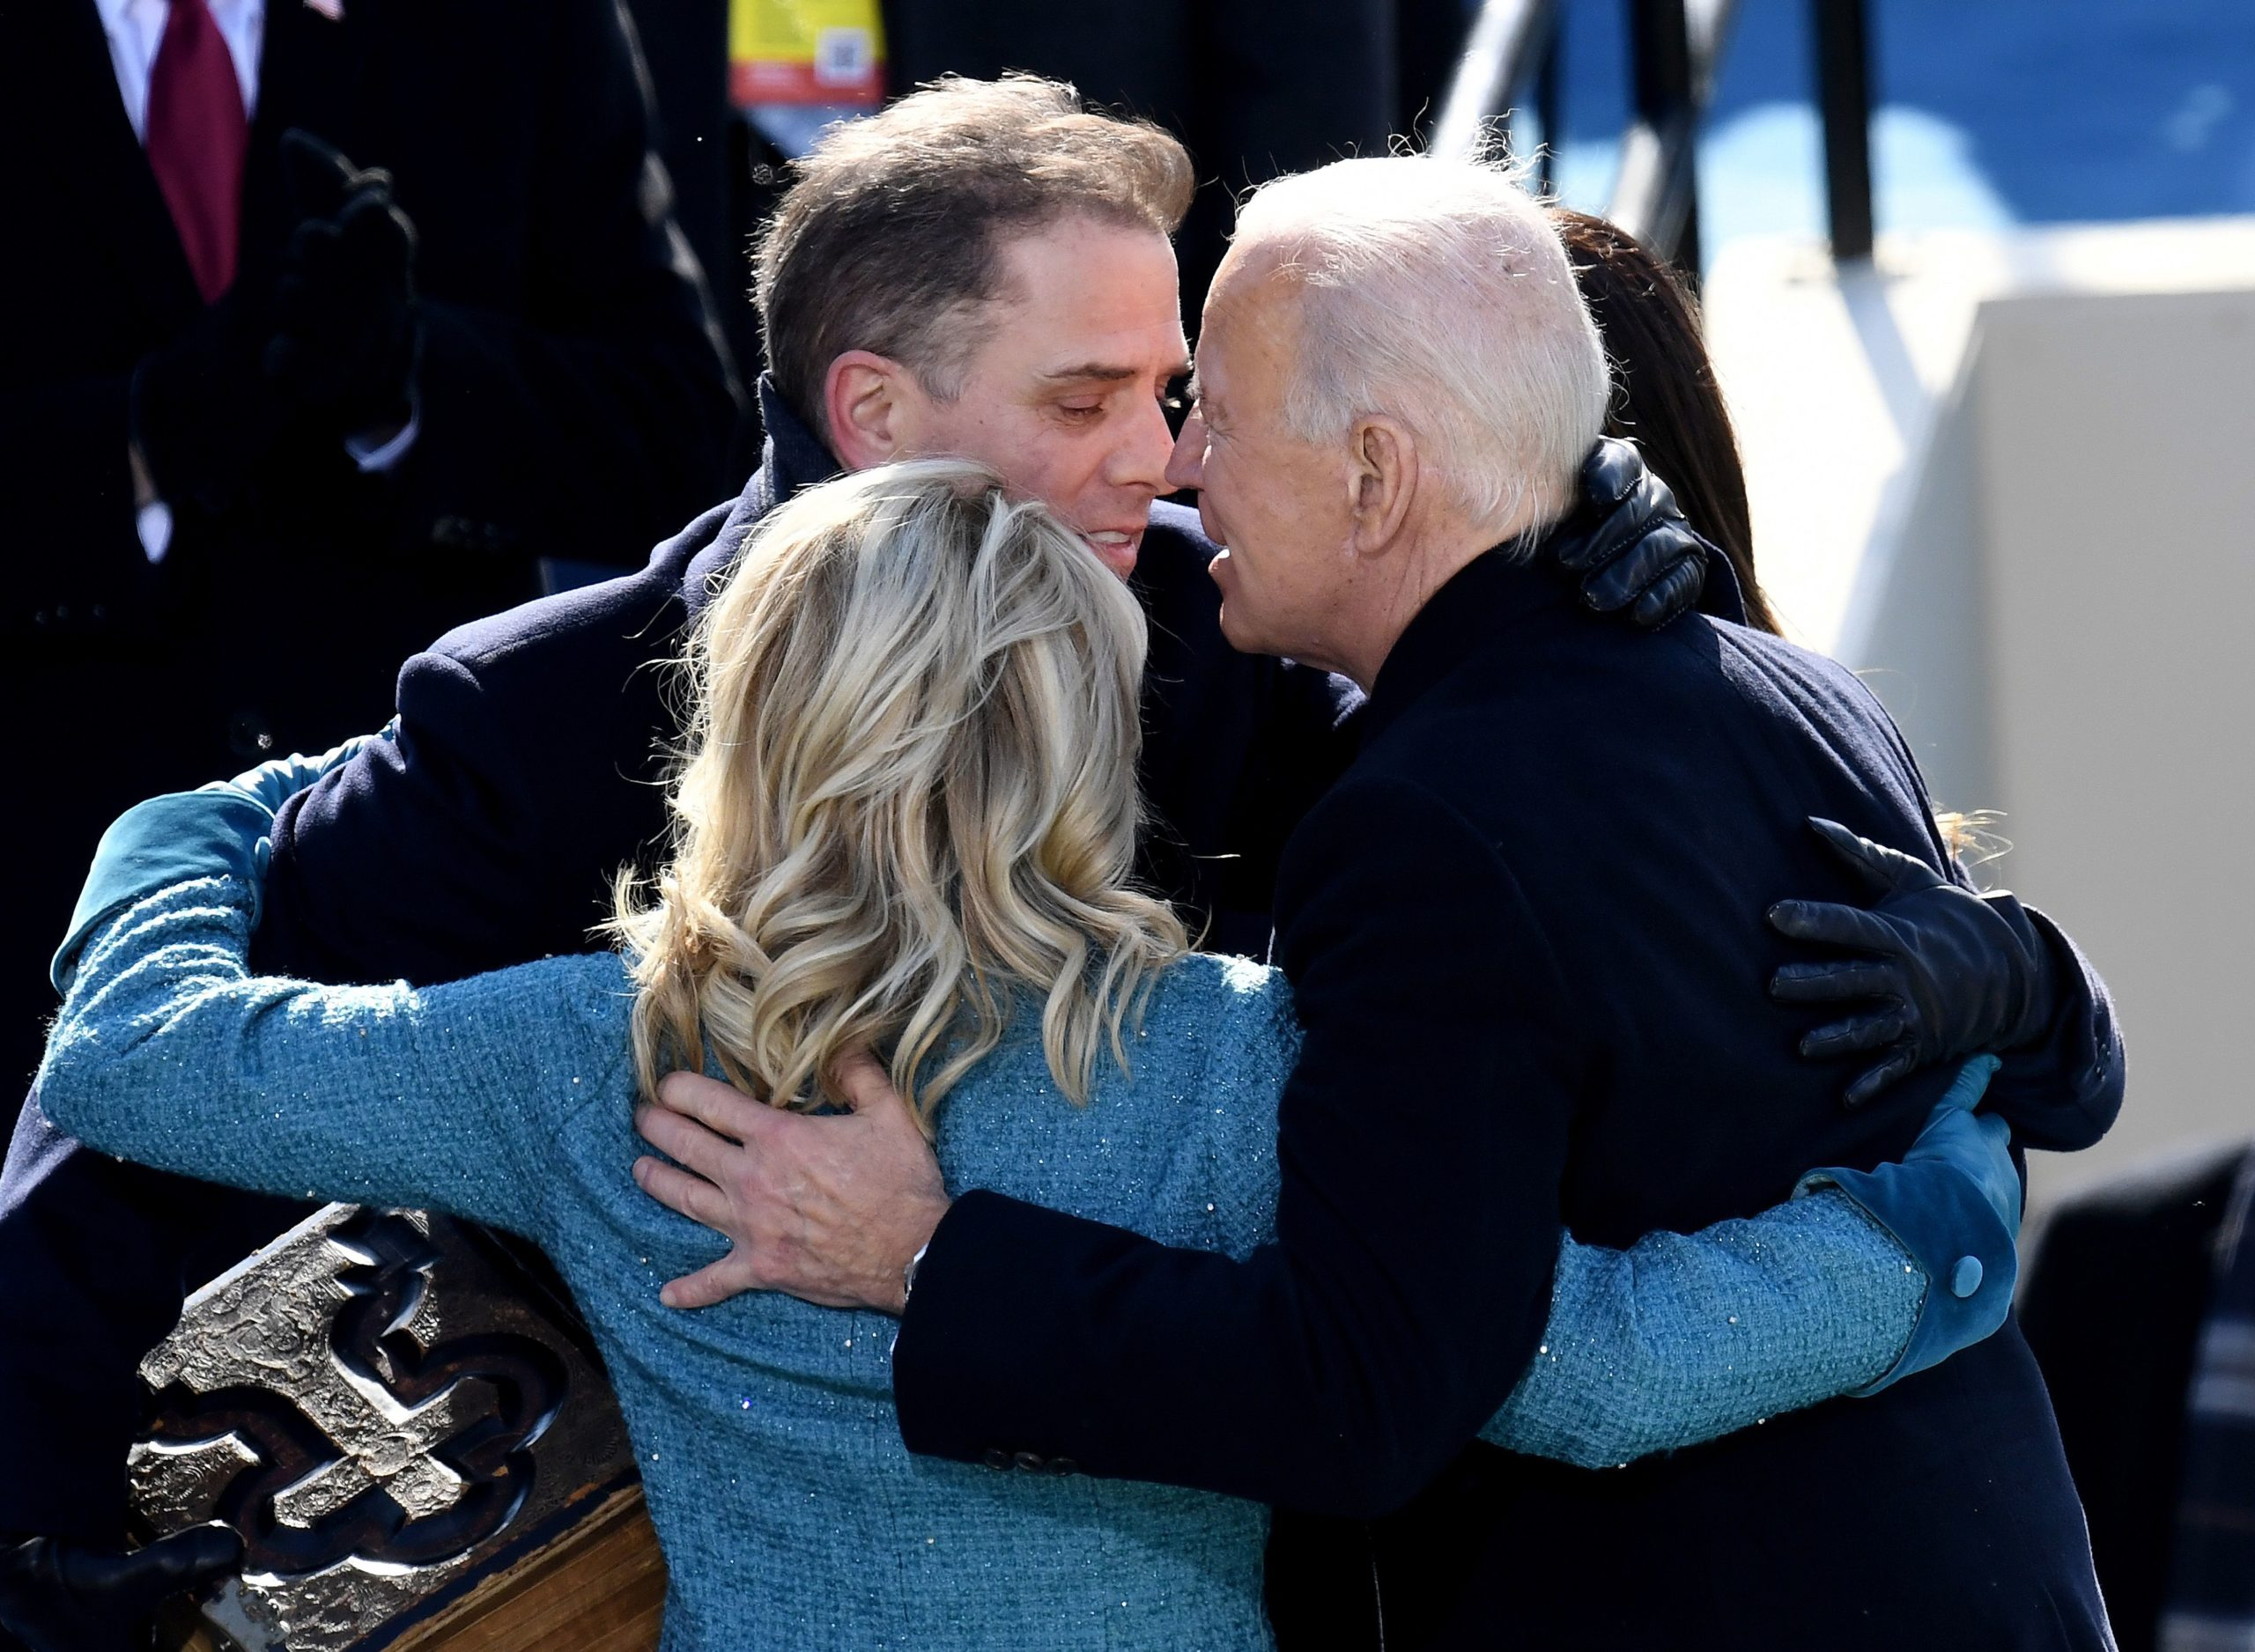 President Joe Biden hugs his son Hunter Biden and First Lady Jill Biden after being sworn in as the 46th president, on Jan. 20 at the Capitol. (Olivier Douliery/AFP via Getty Images)